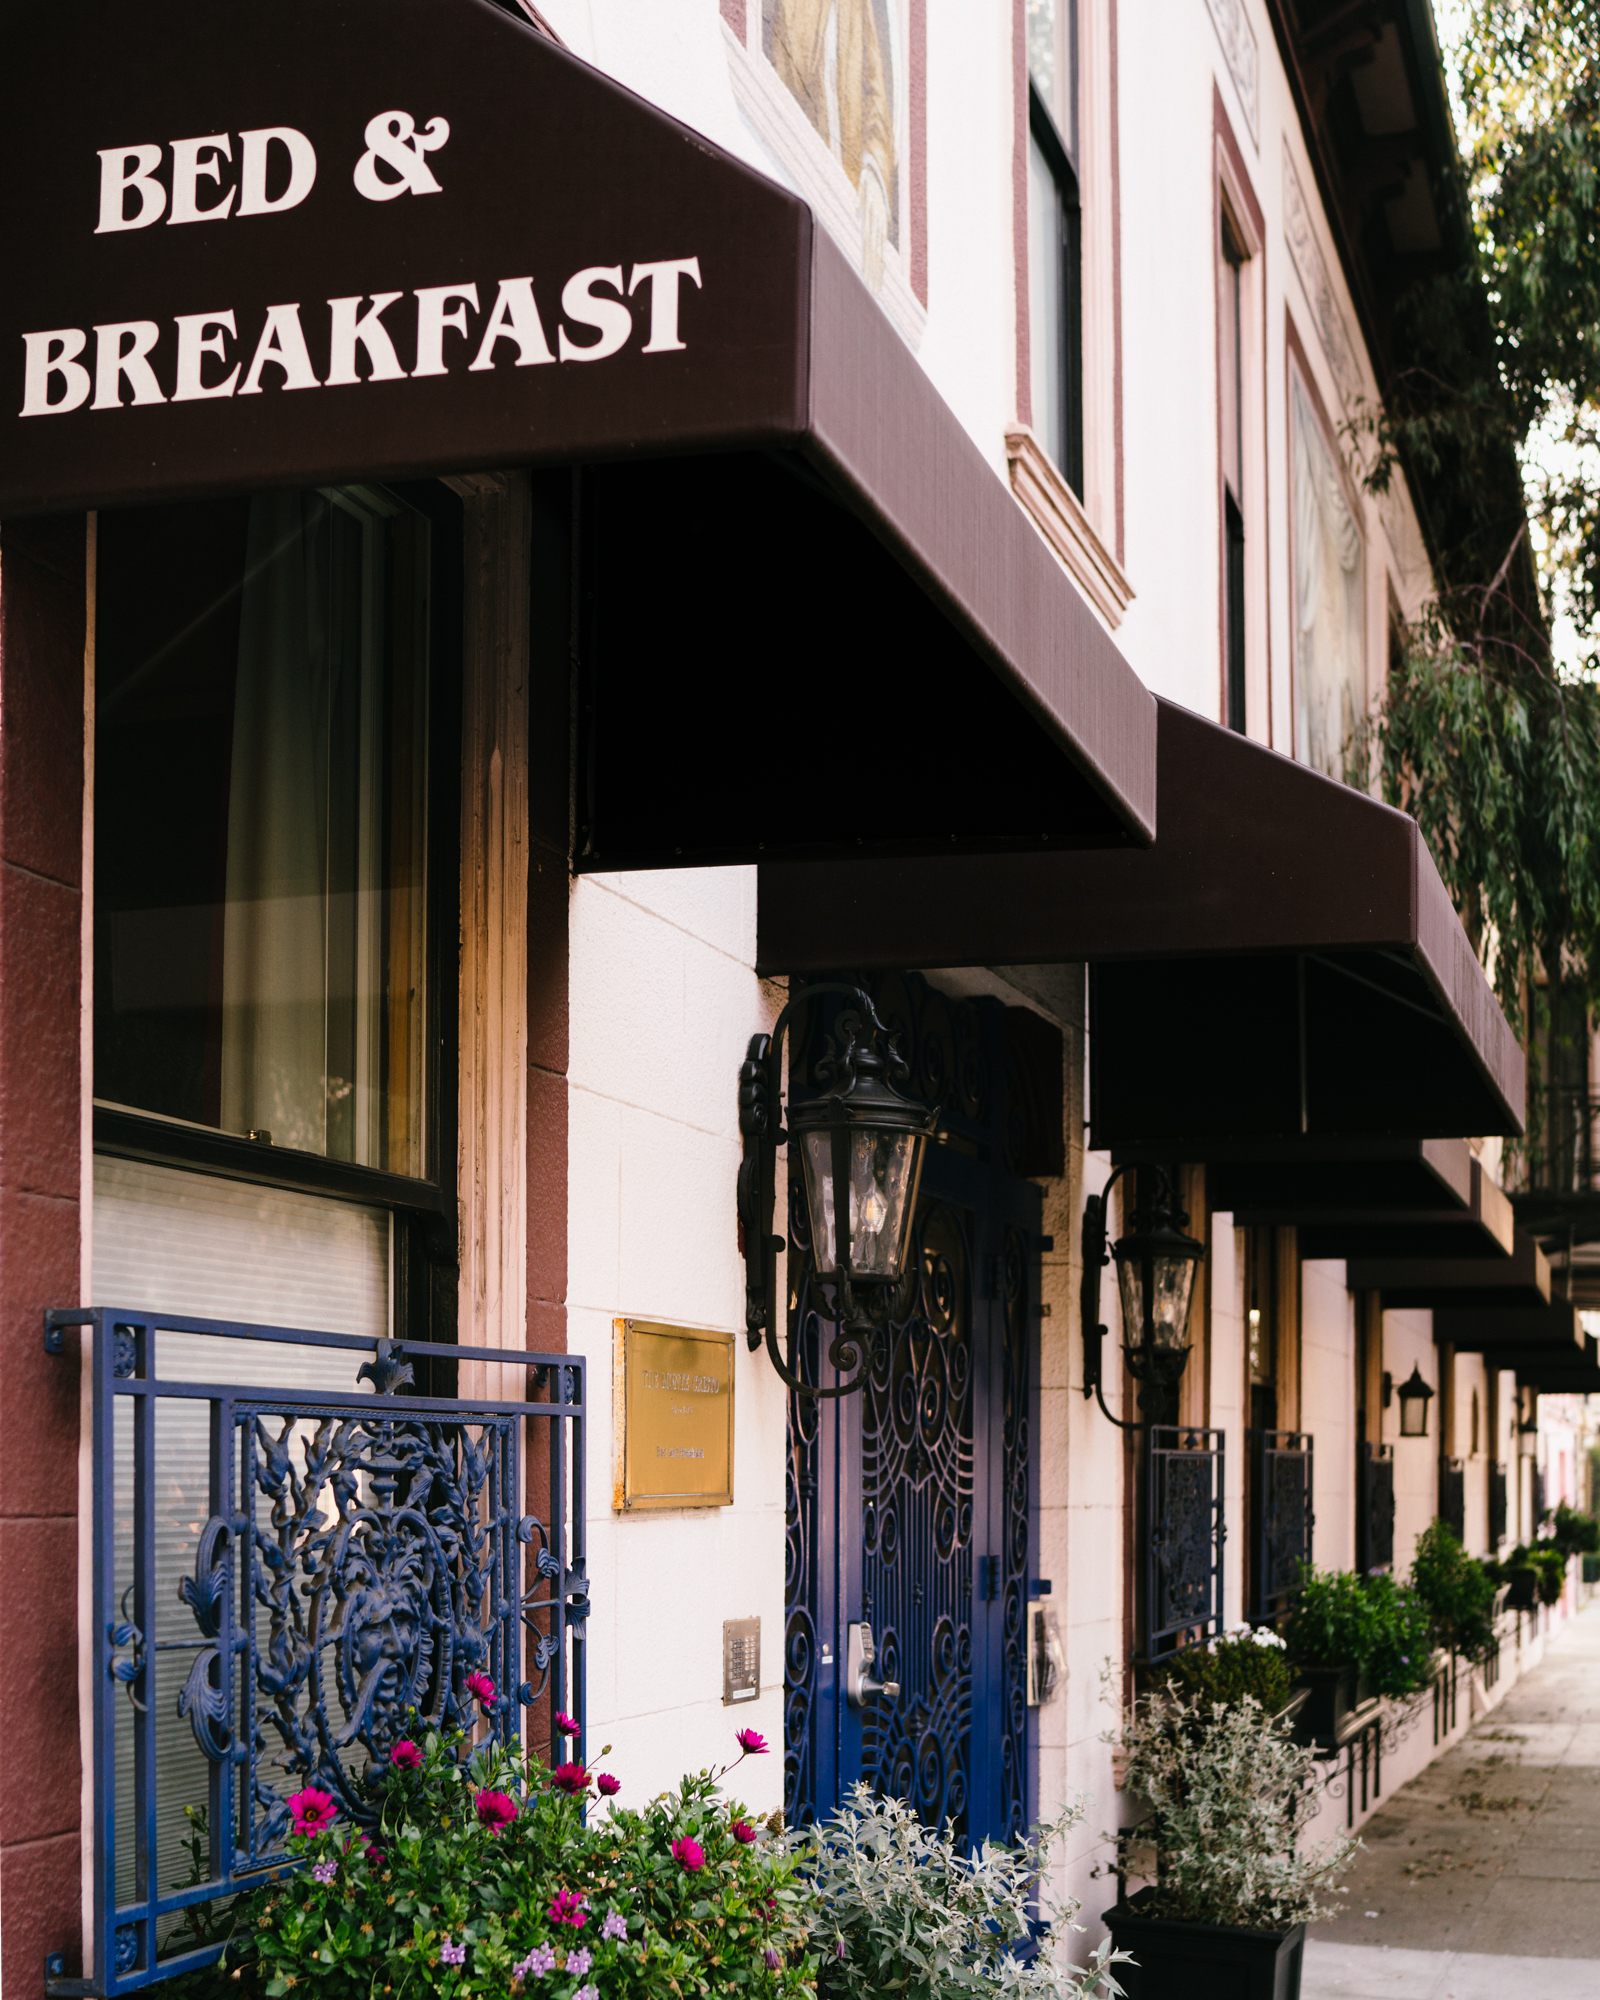 You need to visit this charming Bed and Breakfast in SF